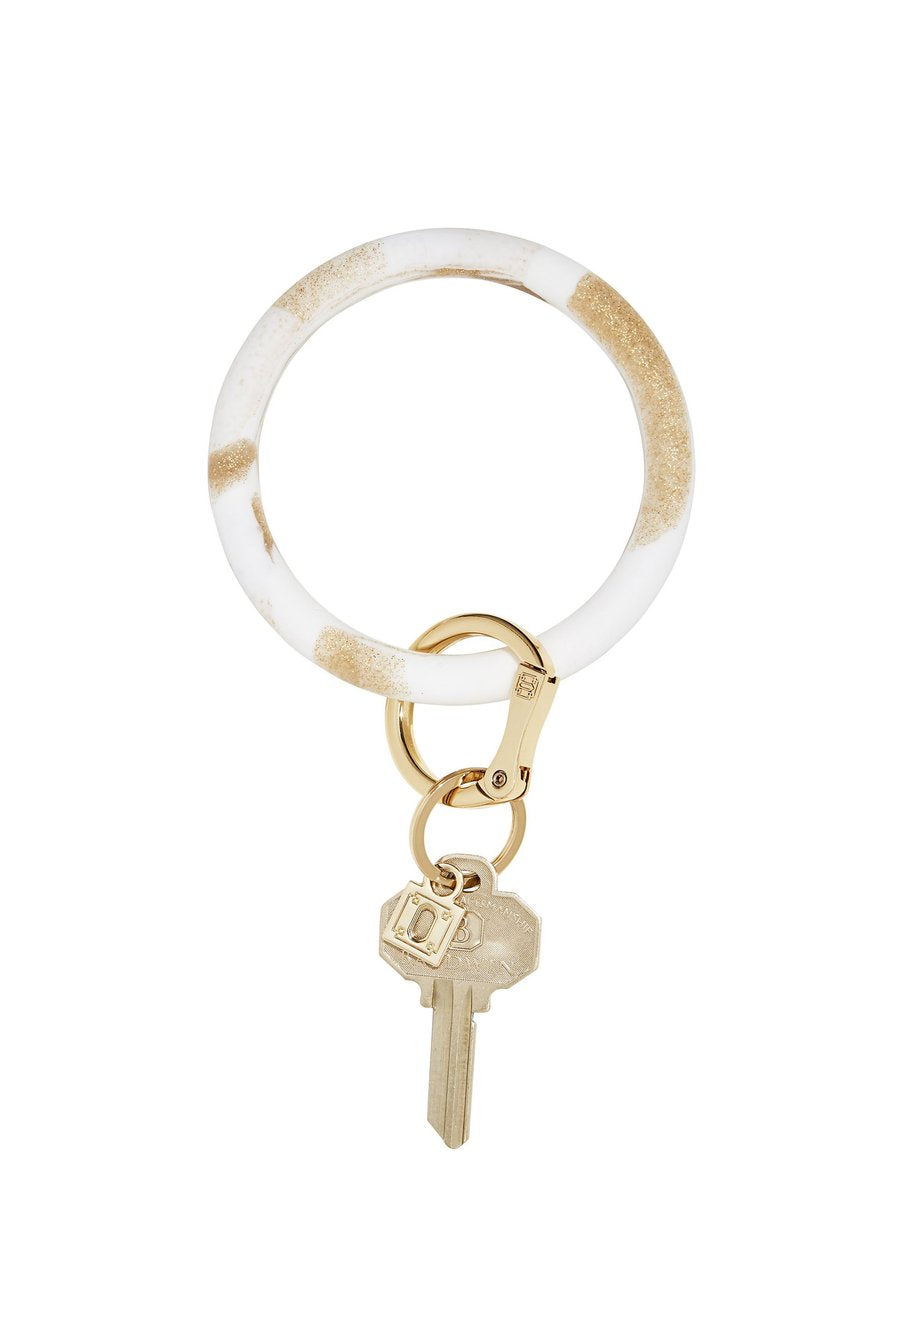 Silicone O-Venture Key Ring - Gold Rush Marble